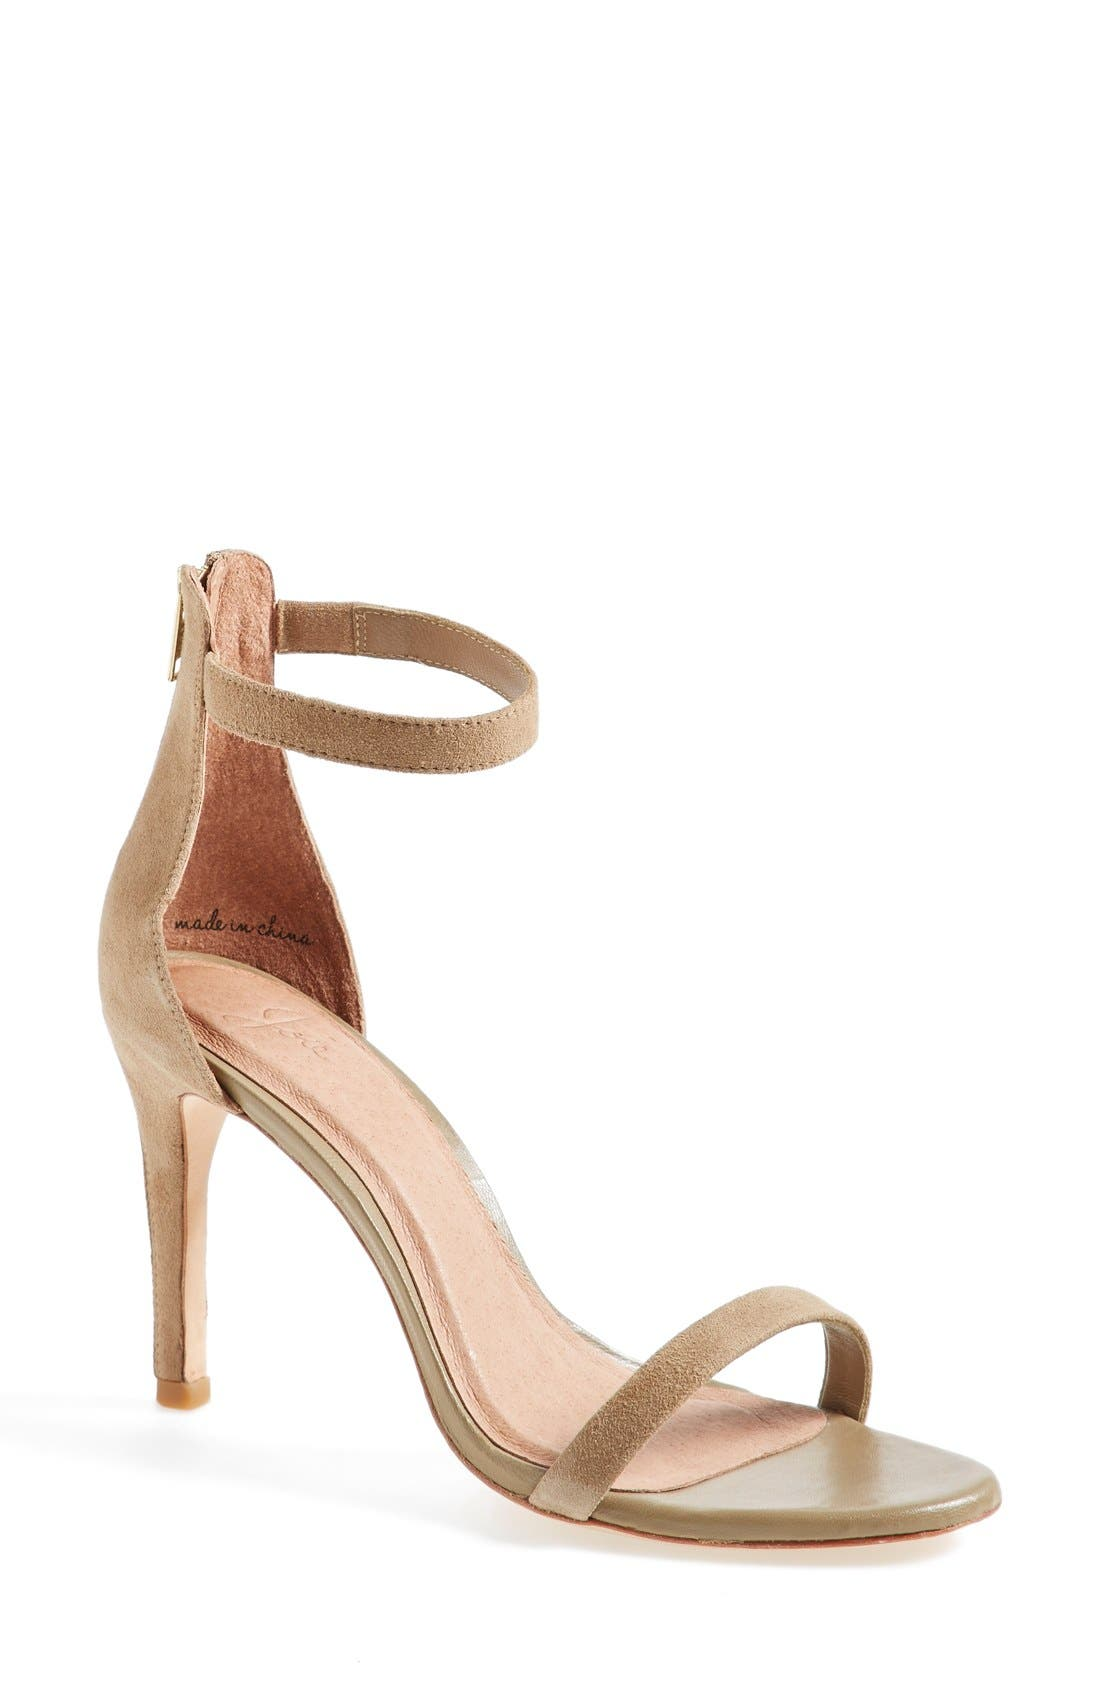 Alternate Image 1 Selected - Joie 'Abbott' Sandal (Women)